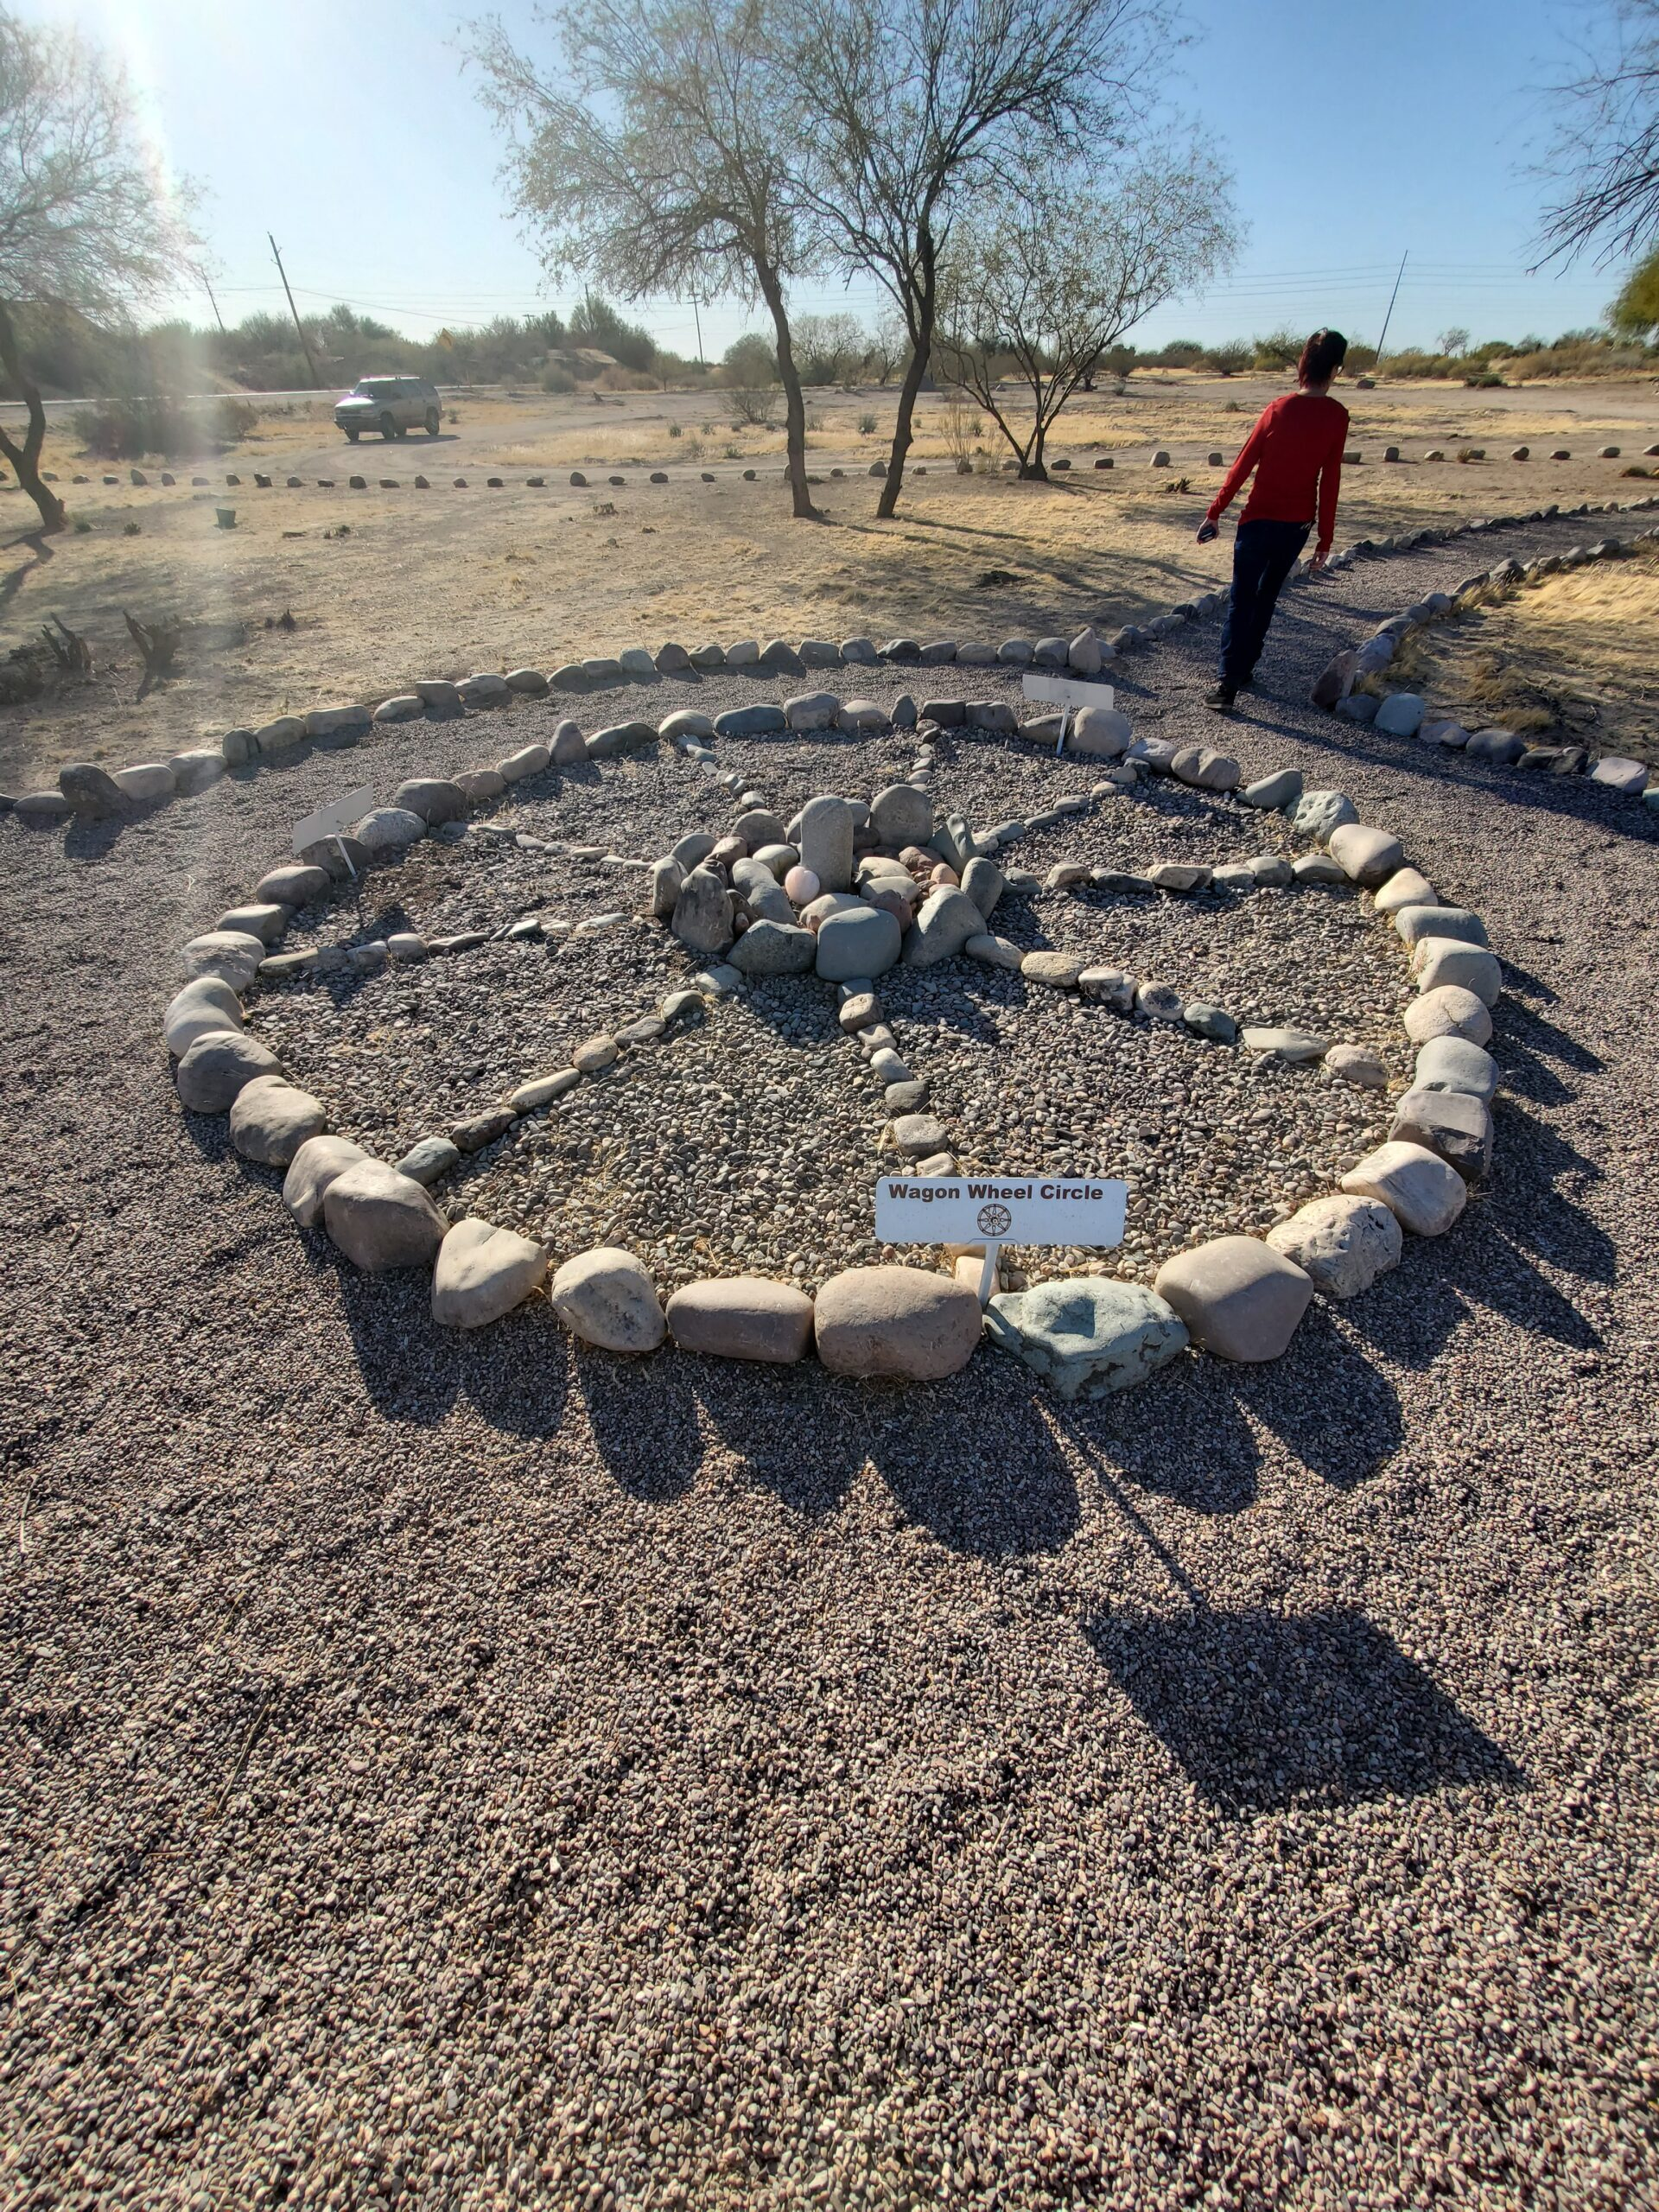 Located in Butte View is this artistic wagon wheel circle made of rocks